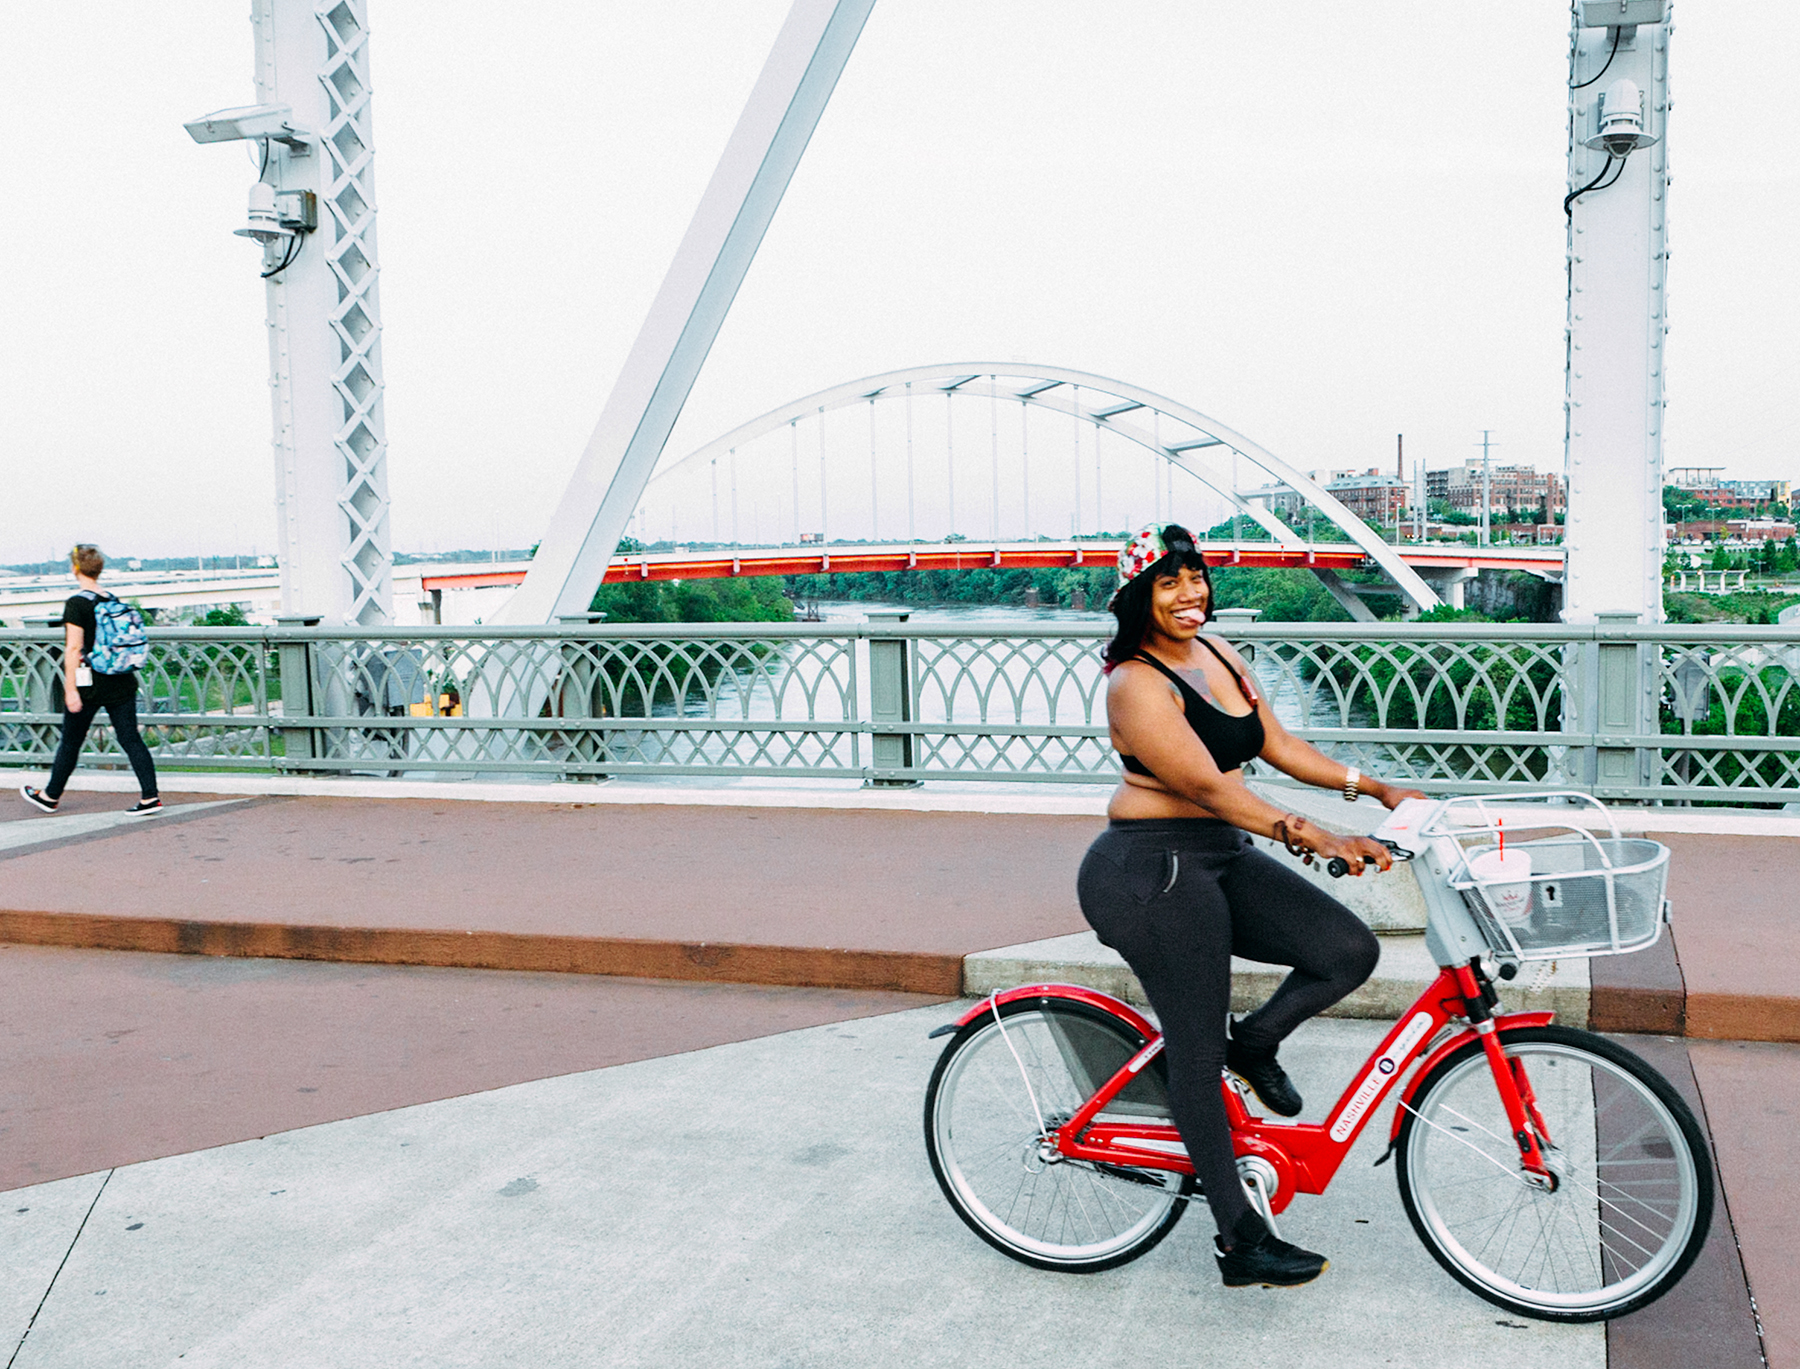 """Heidi prefers to let the photos here speak for themselves. However, she did have a story to share about this one, which was taken as she walked over the John Seigenthaler Bridge after a memorable shoot at the Schermerhorn Symphony Center. """"The woman on the red bike was shot the same day I shot Yo Yo Ma, as I walked back back over the bridge. It's the one I wanted to end the book with. The editor chose to end with a photo of the club, The End, which is fun and made sense. But the woman on the bike will always be the last page to me. She rode past me twice, the second time more slowly, laughing, and shouting, 'You can shoot me for your portfolio!'"""""""